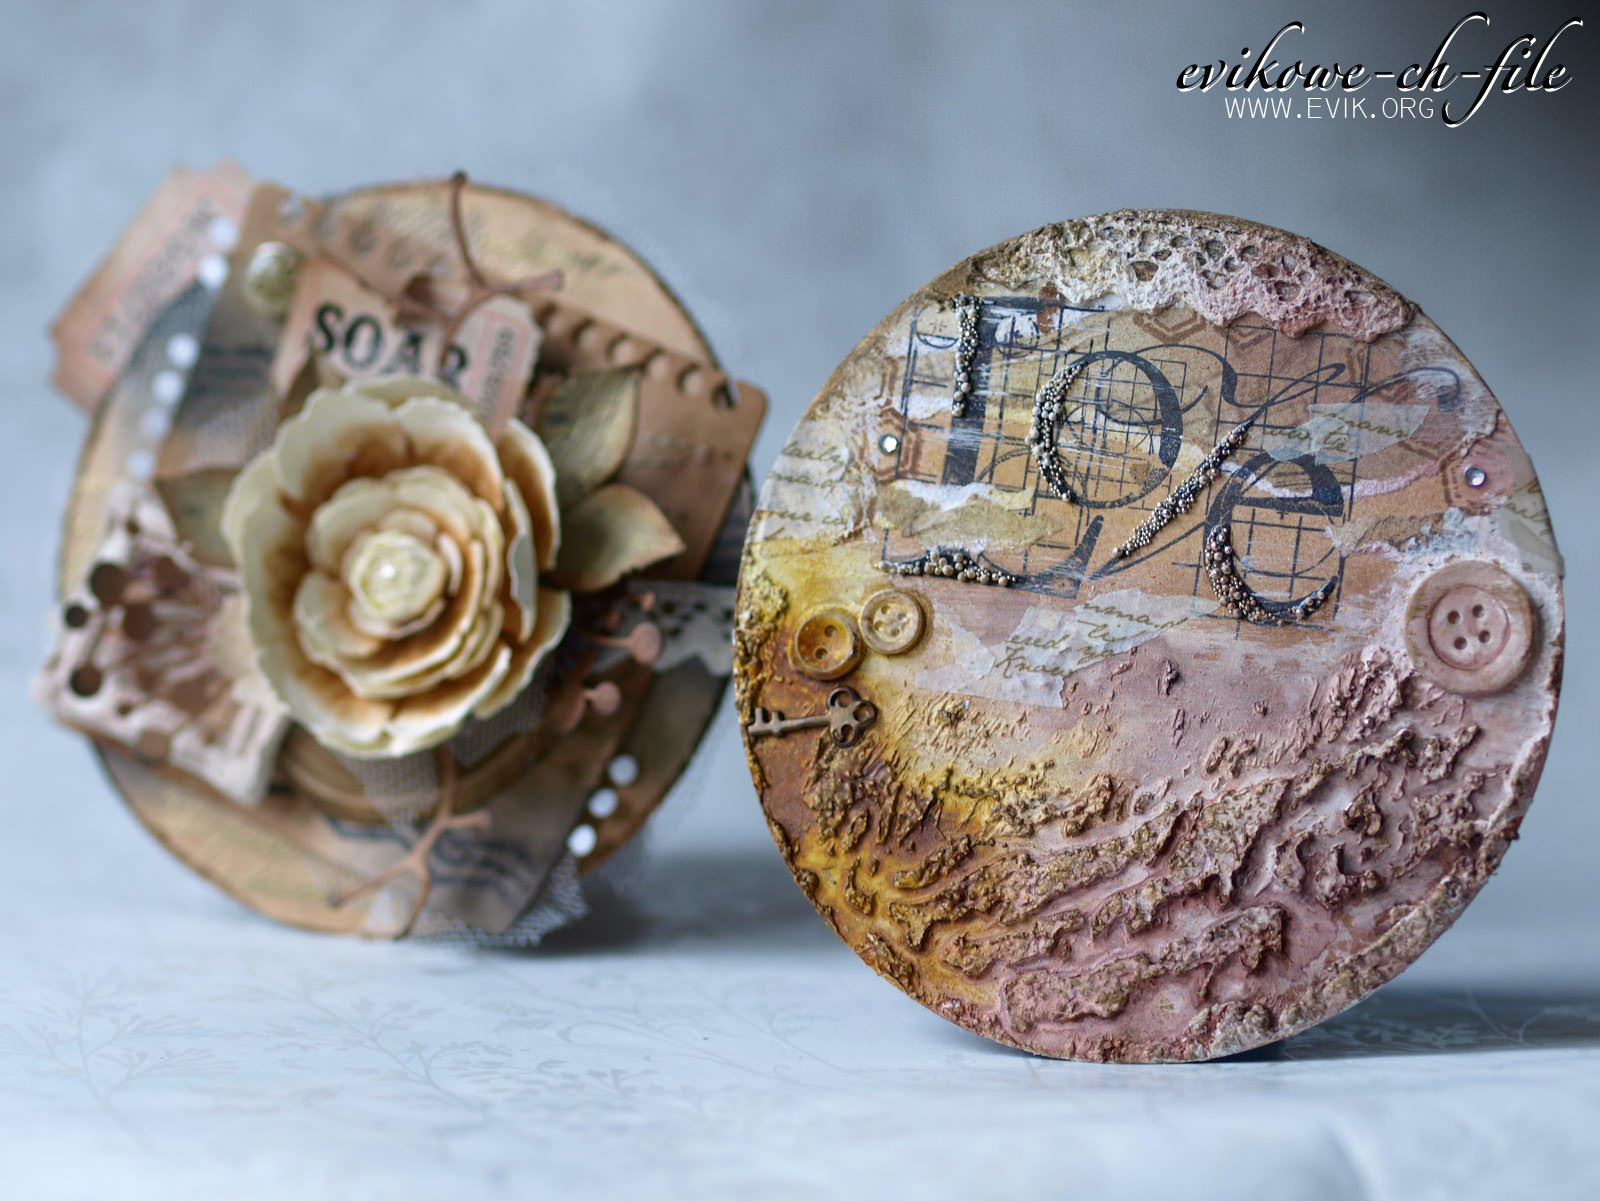 Die-namics Mini Album Torn Notebook STAX, Memory Box - Chloe stem, Tim Holtz ticket, , Tim Holtz Sizzix Die TATTERED FLORALS Bigz Flower, Evik, Evikowe-ch-file card, gold embossing